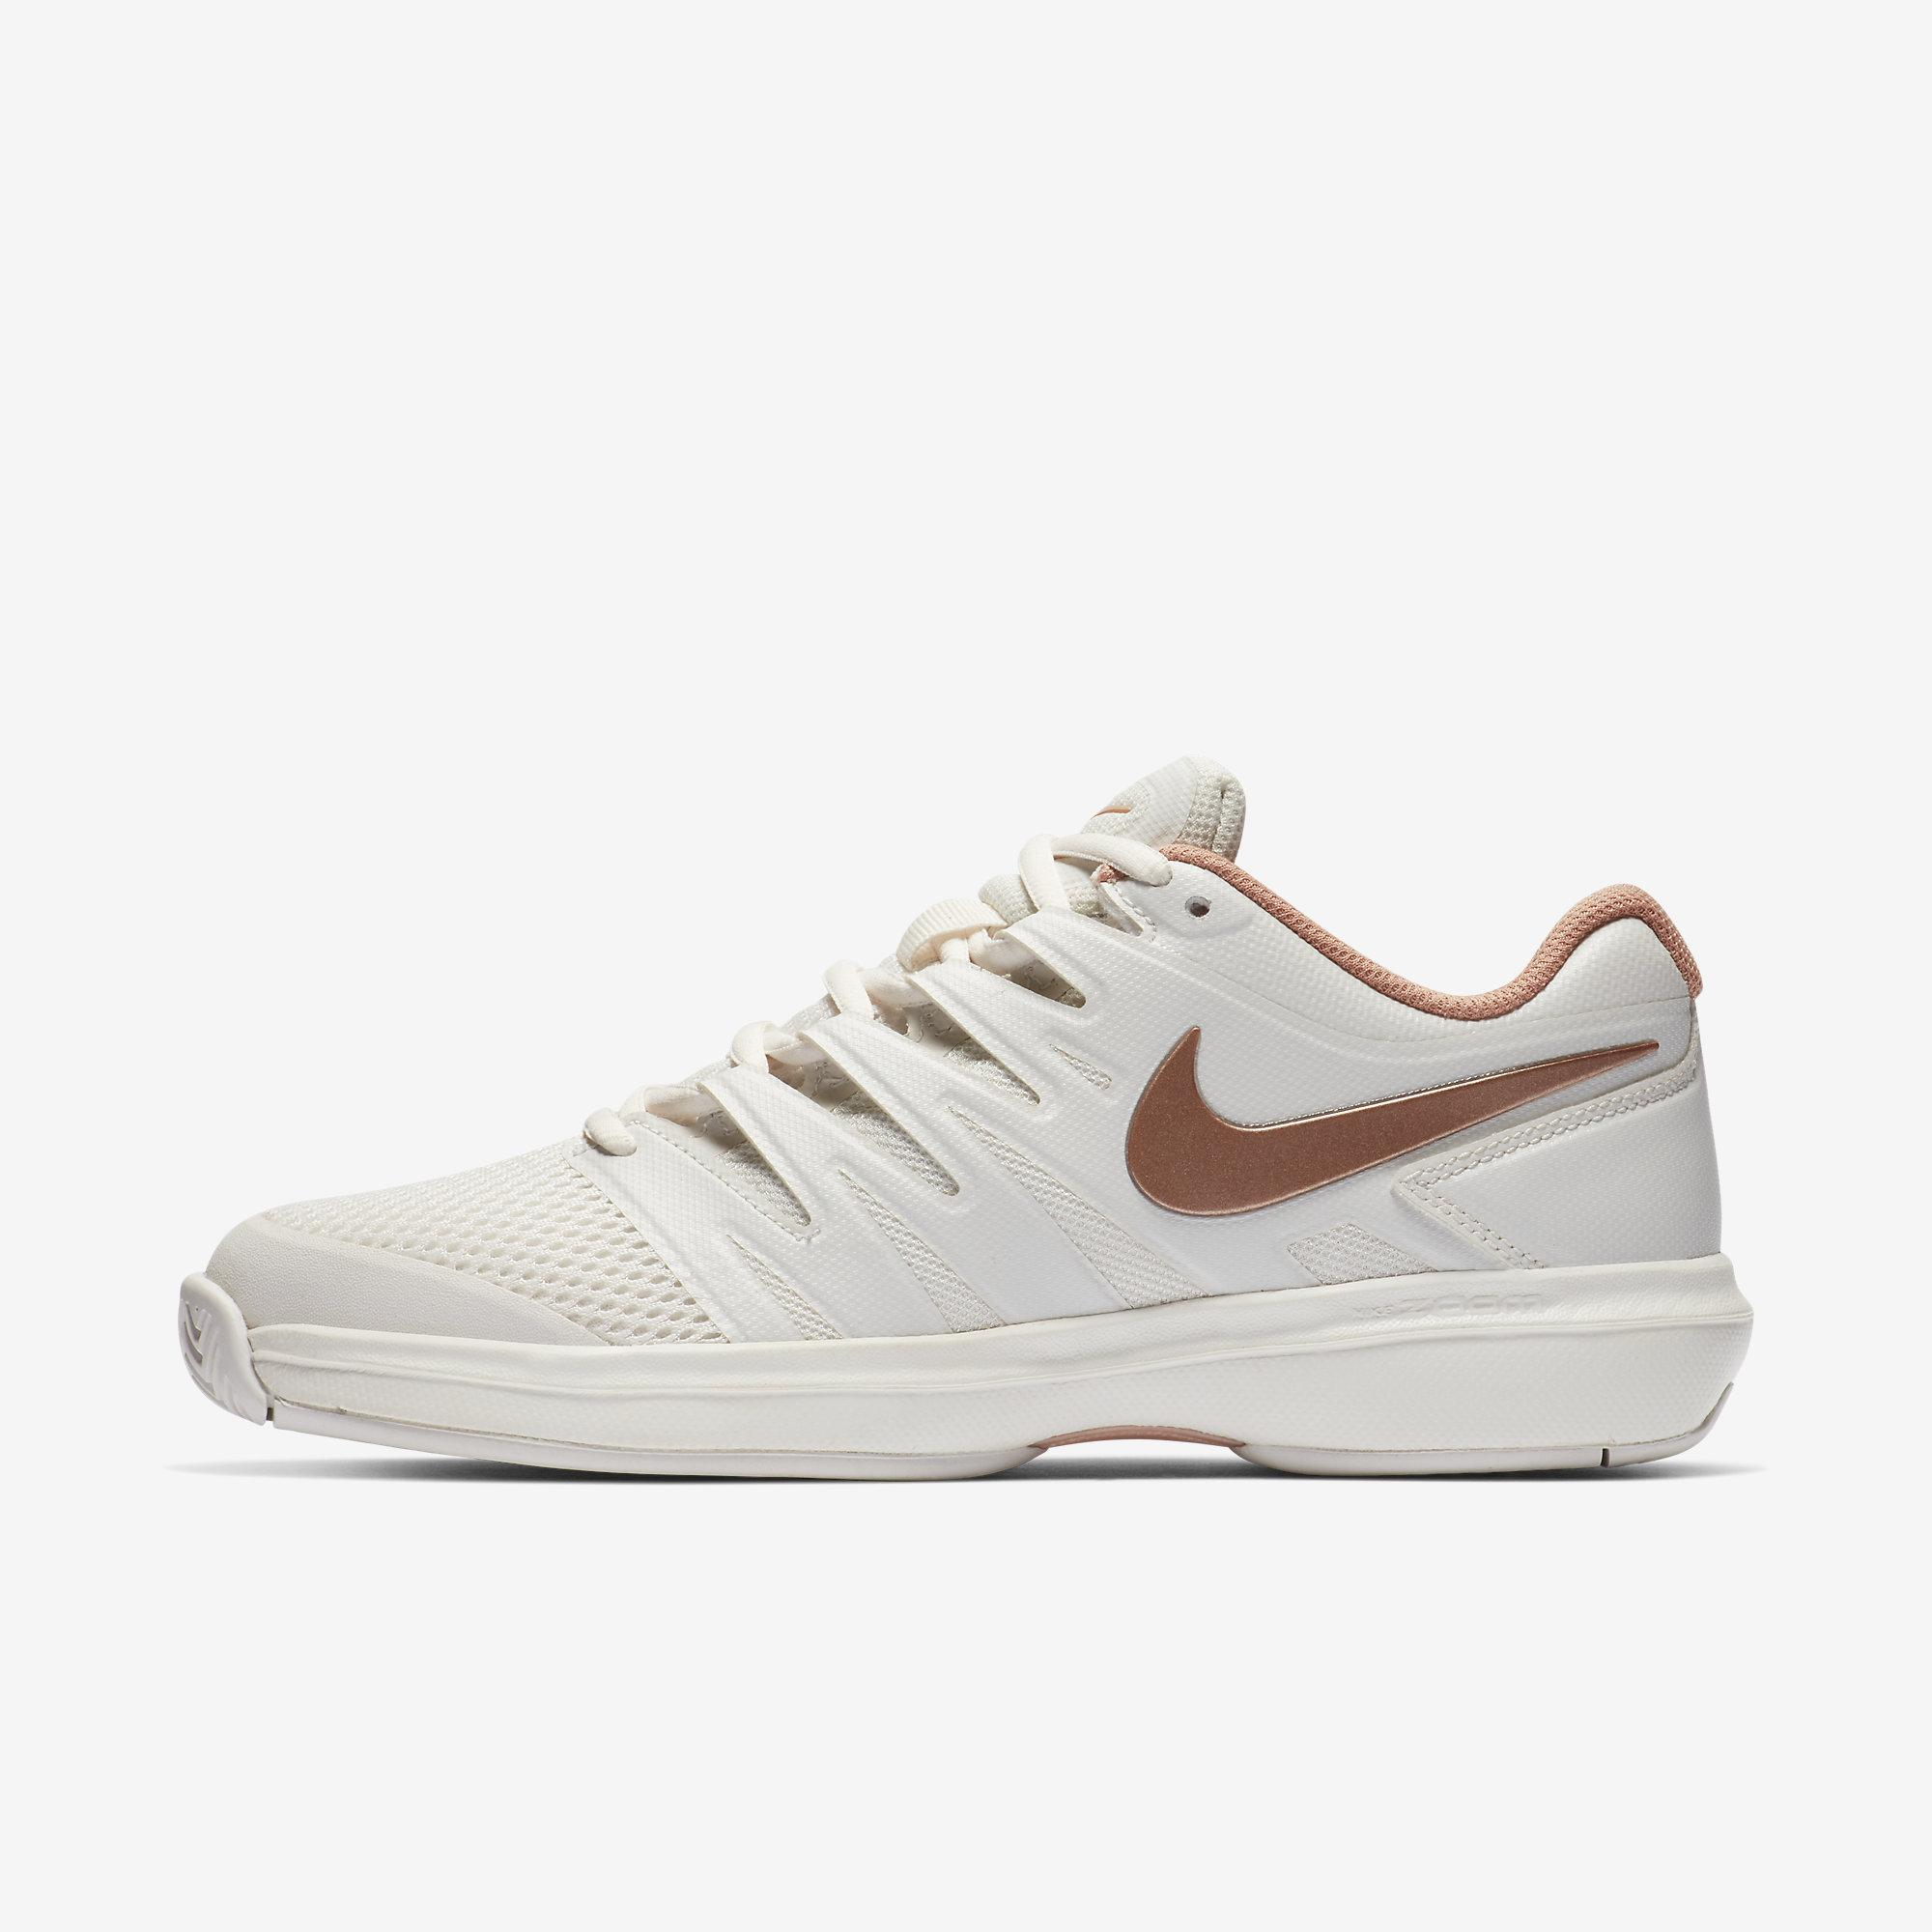 1e121b0d4793 Nike Womens Air Zoom Prestige Tennis Shoes - Phantom Rose Gold -  Tennisnuts.com